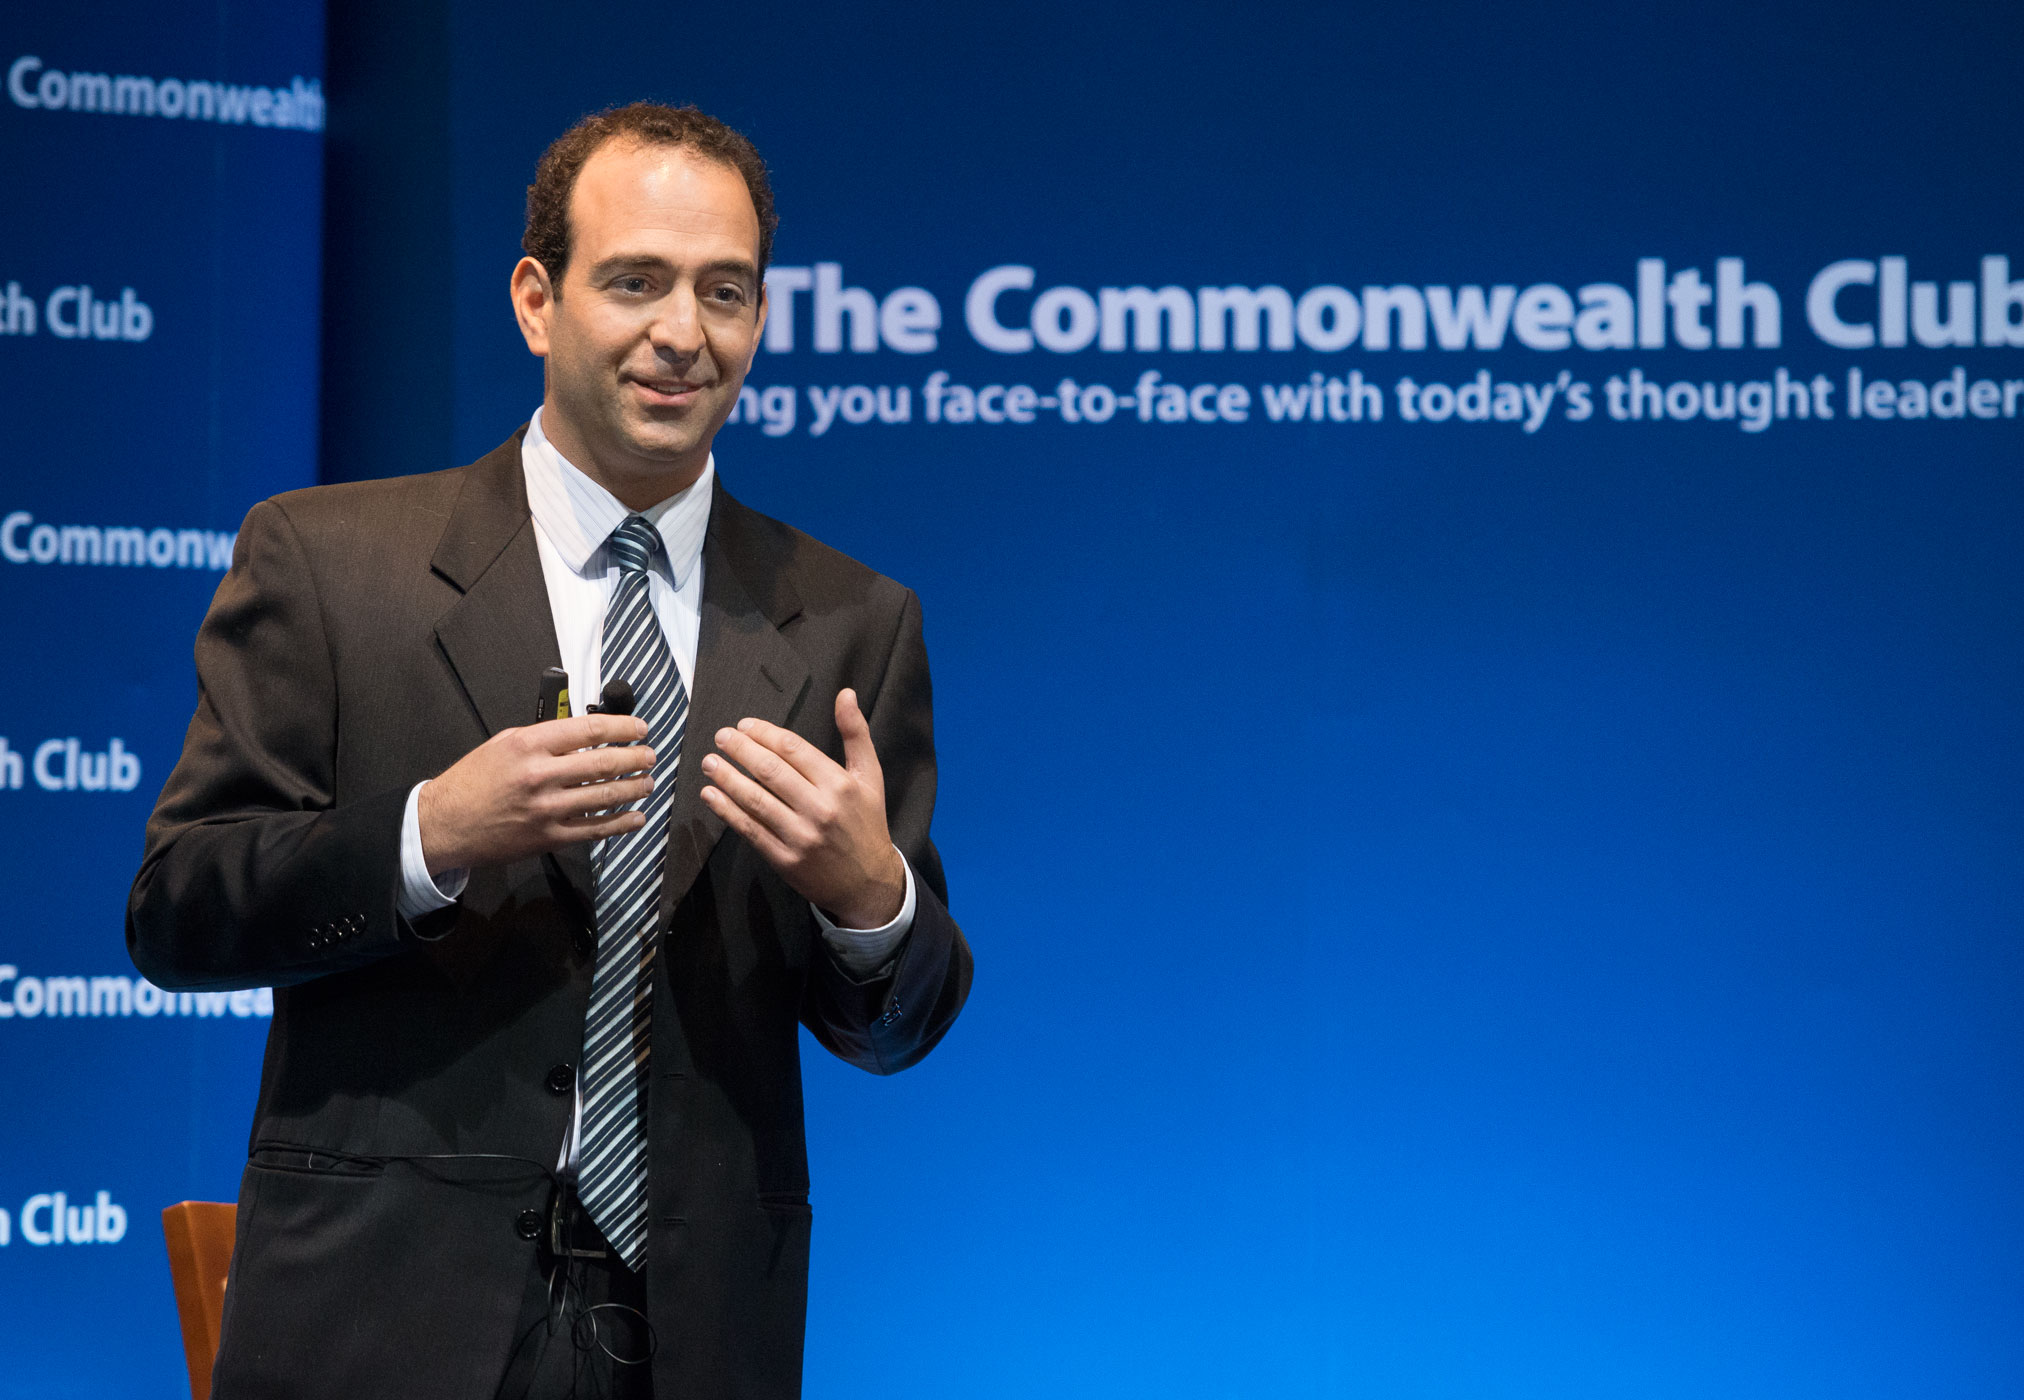 Leor speaking about his research to the Commonwealth Club, the nation's oldest and largest public affairs forum.